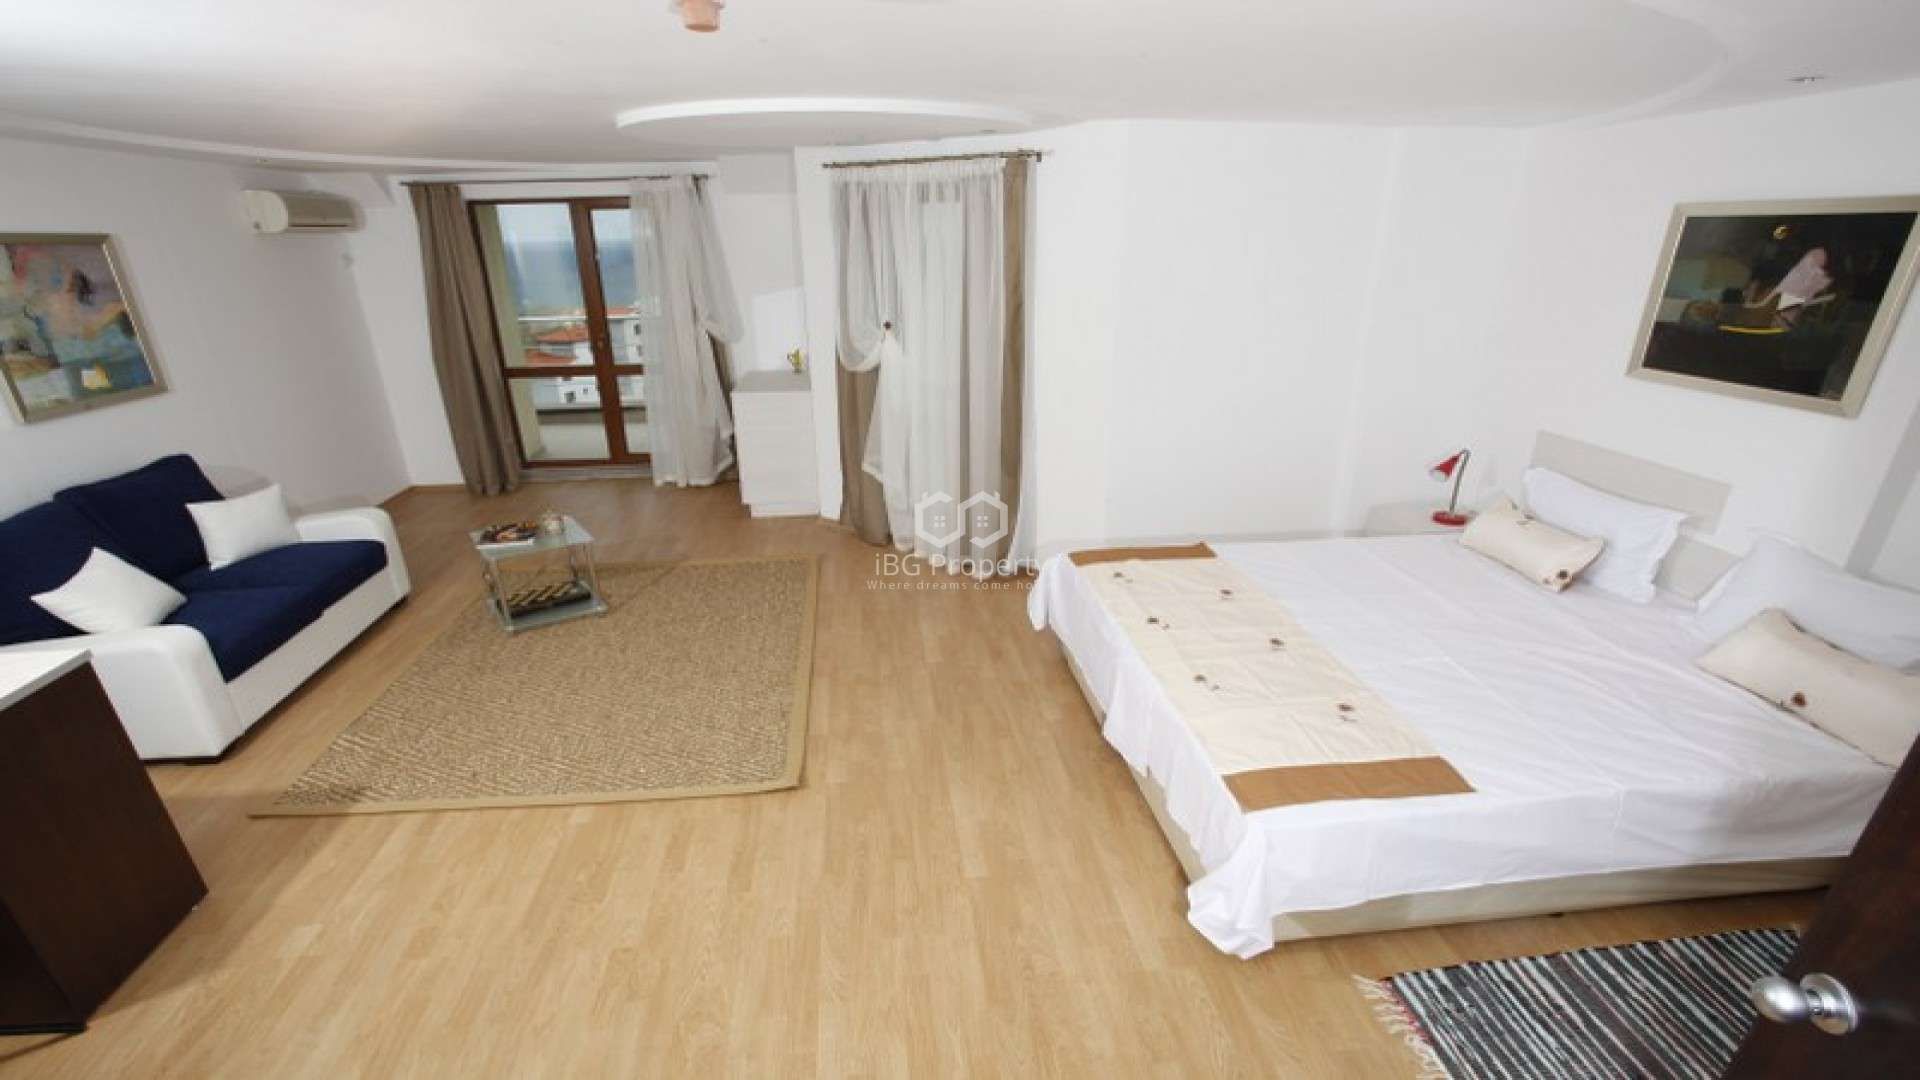 One bedroom apartment Byala 75 m2